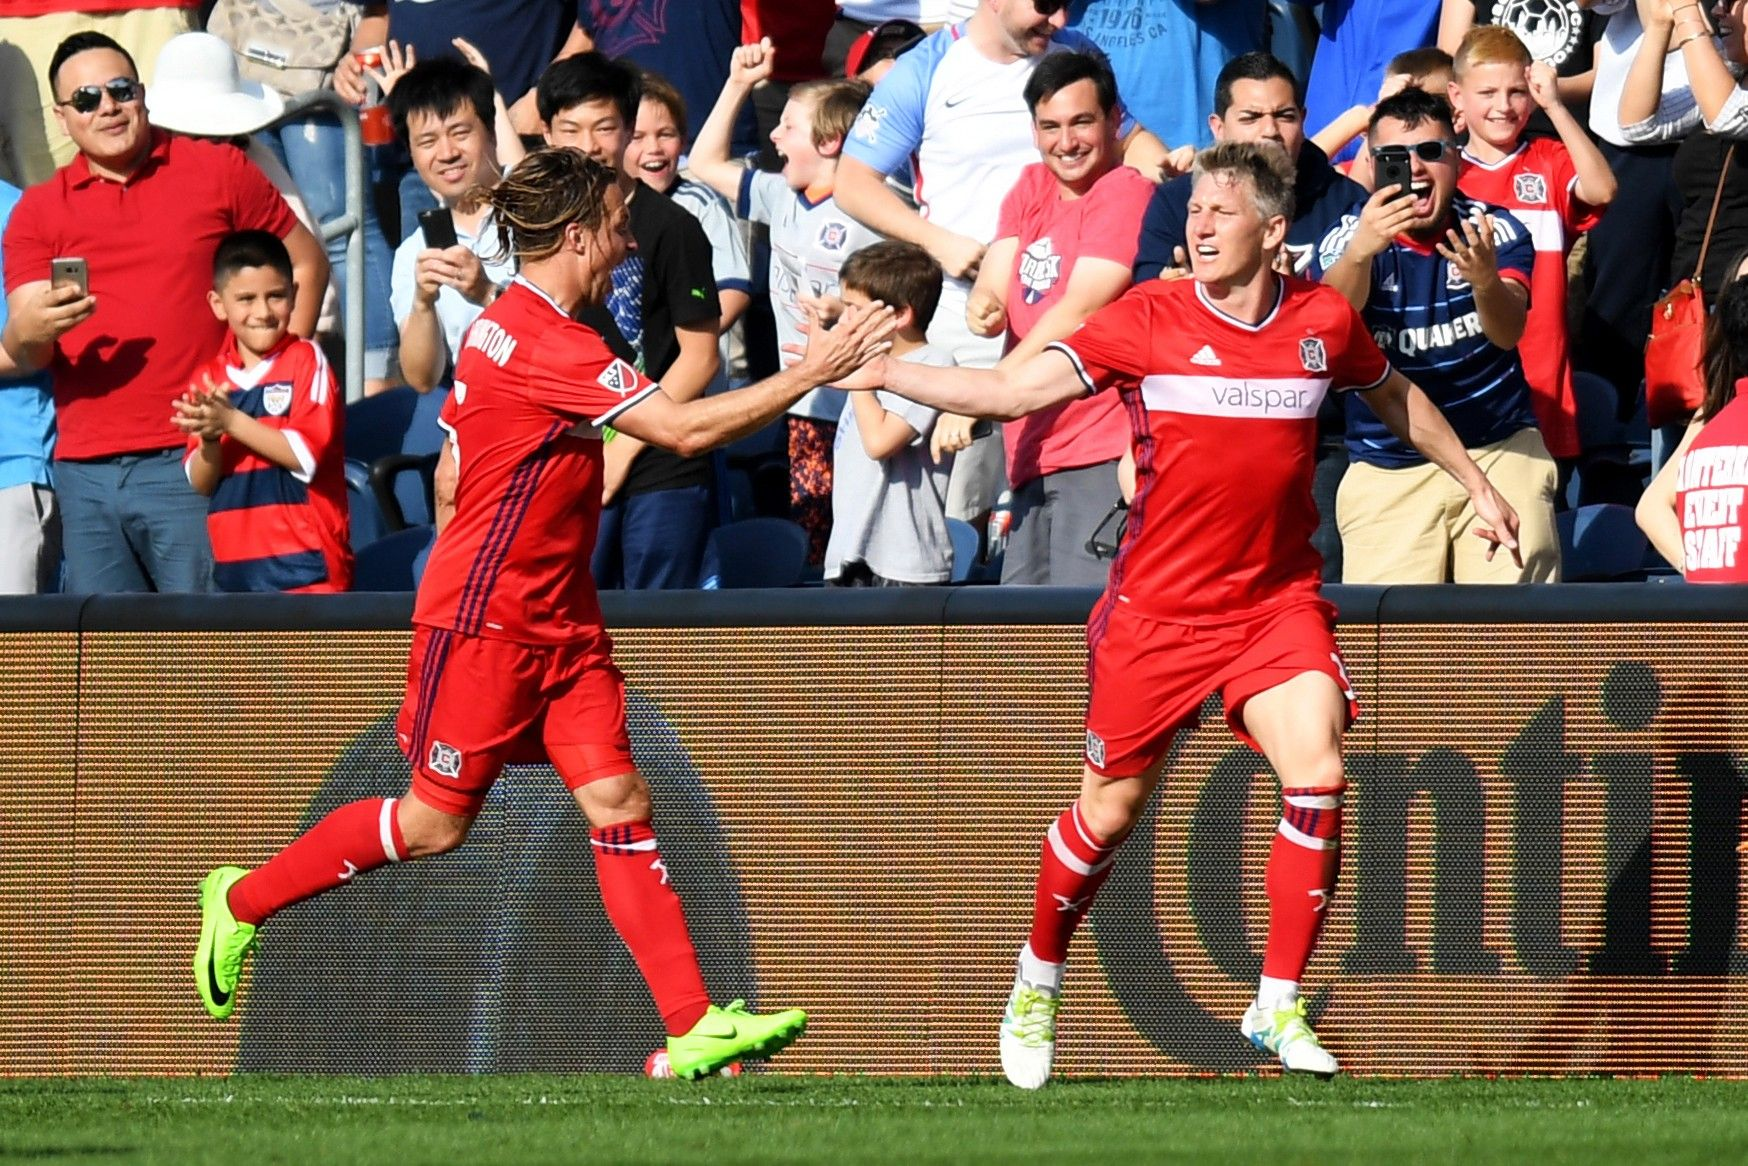 Chicago Fire midfielder Bastian Schweinsteiger, right.